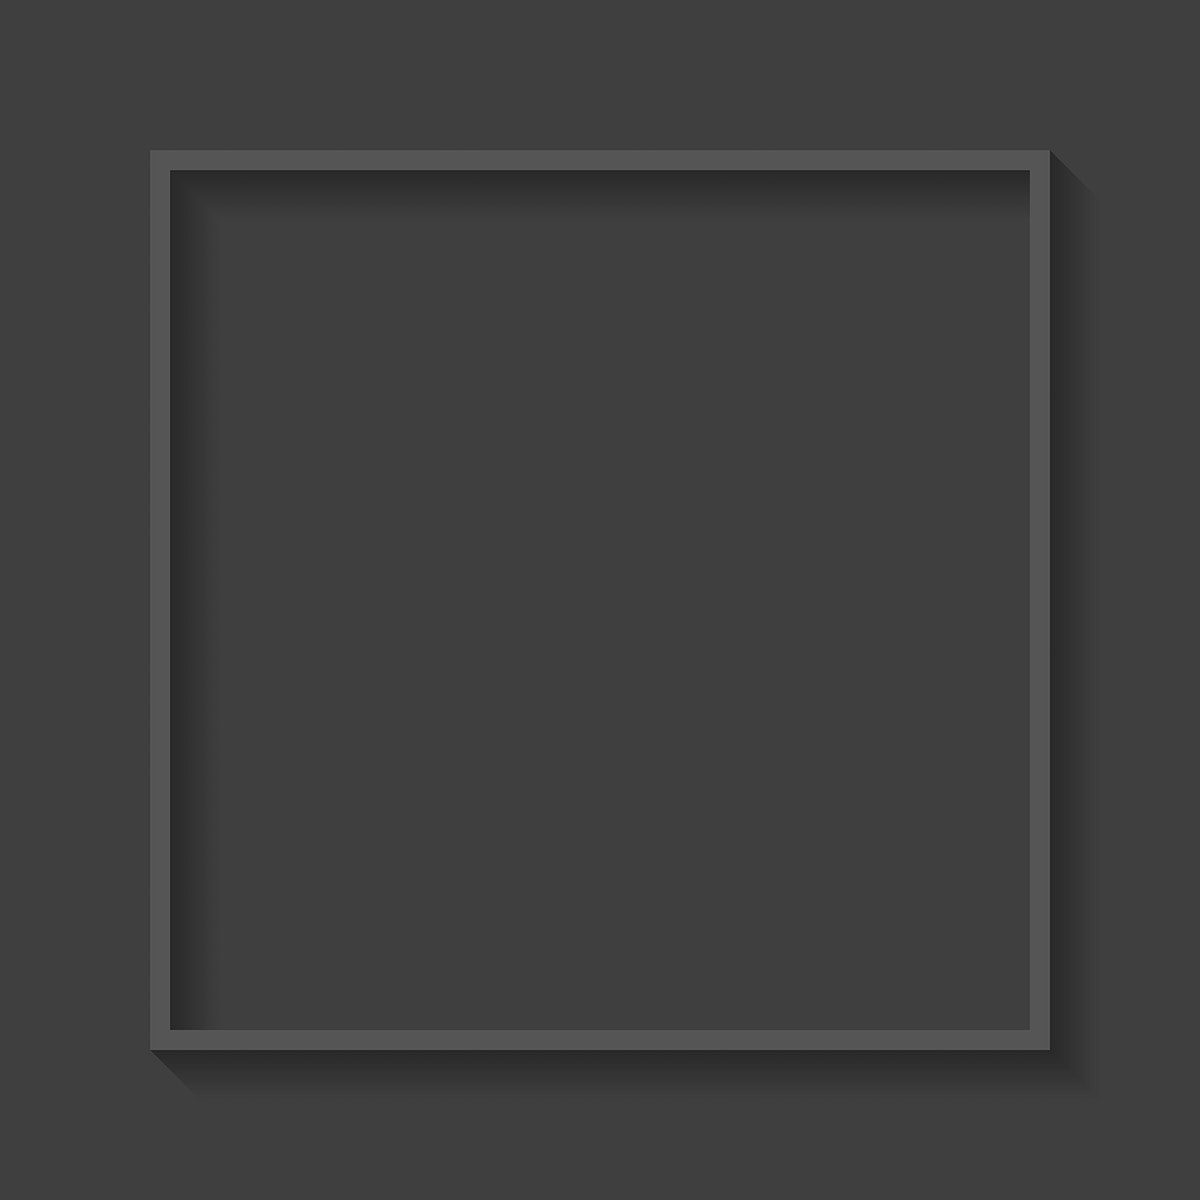 Square frame on gray background vector